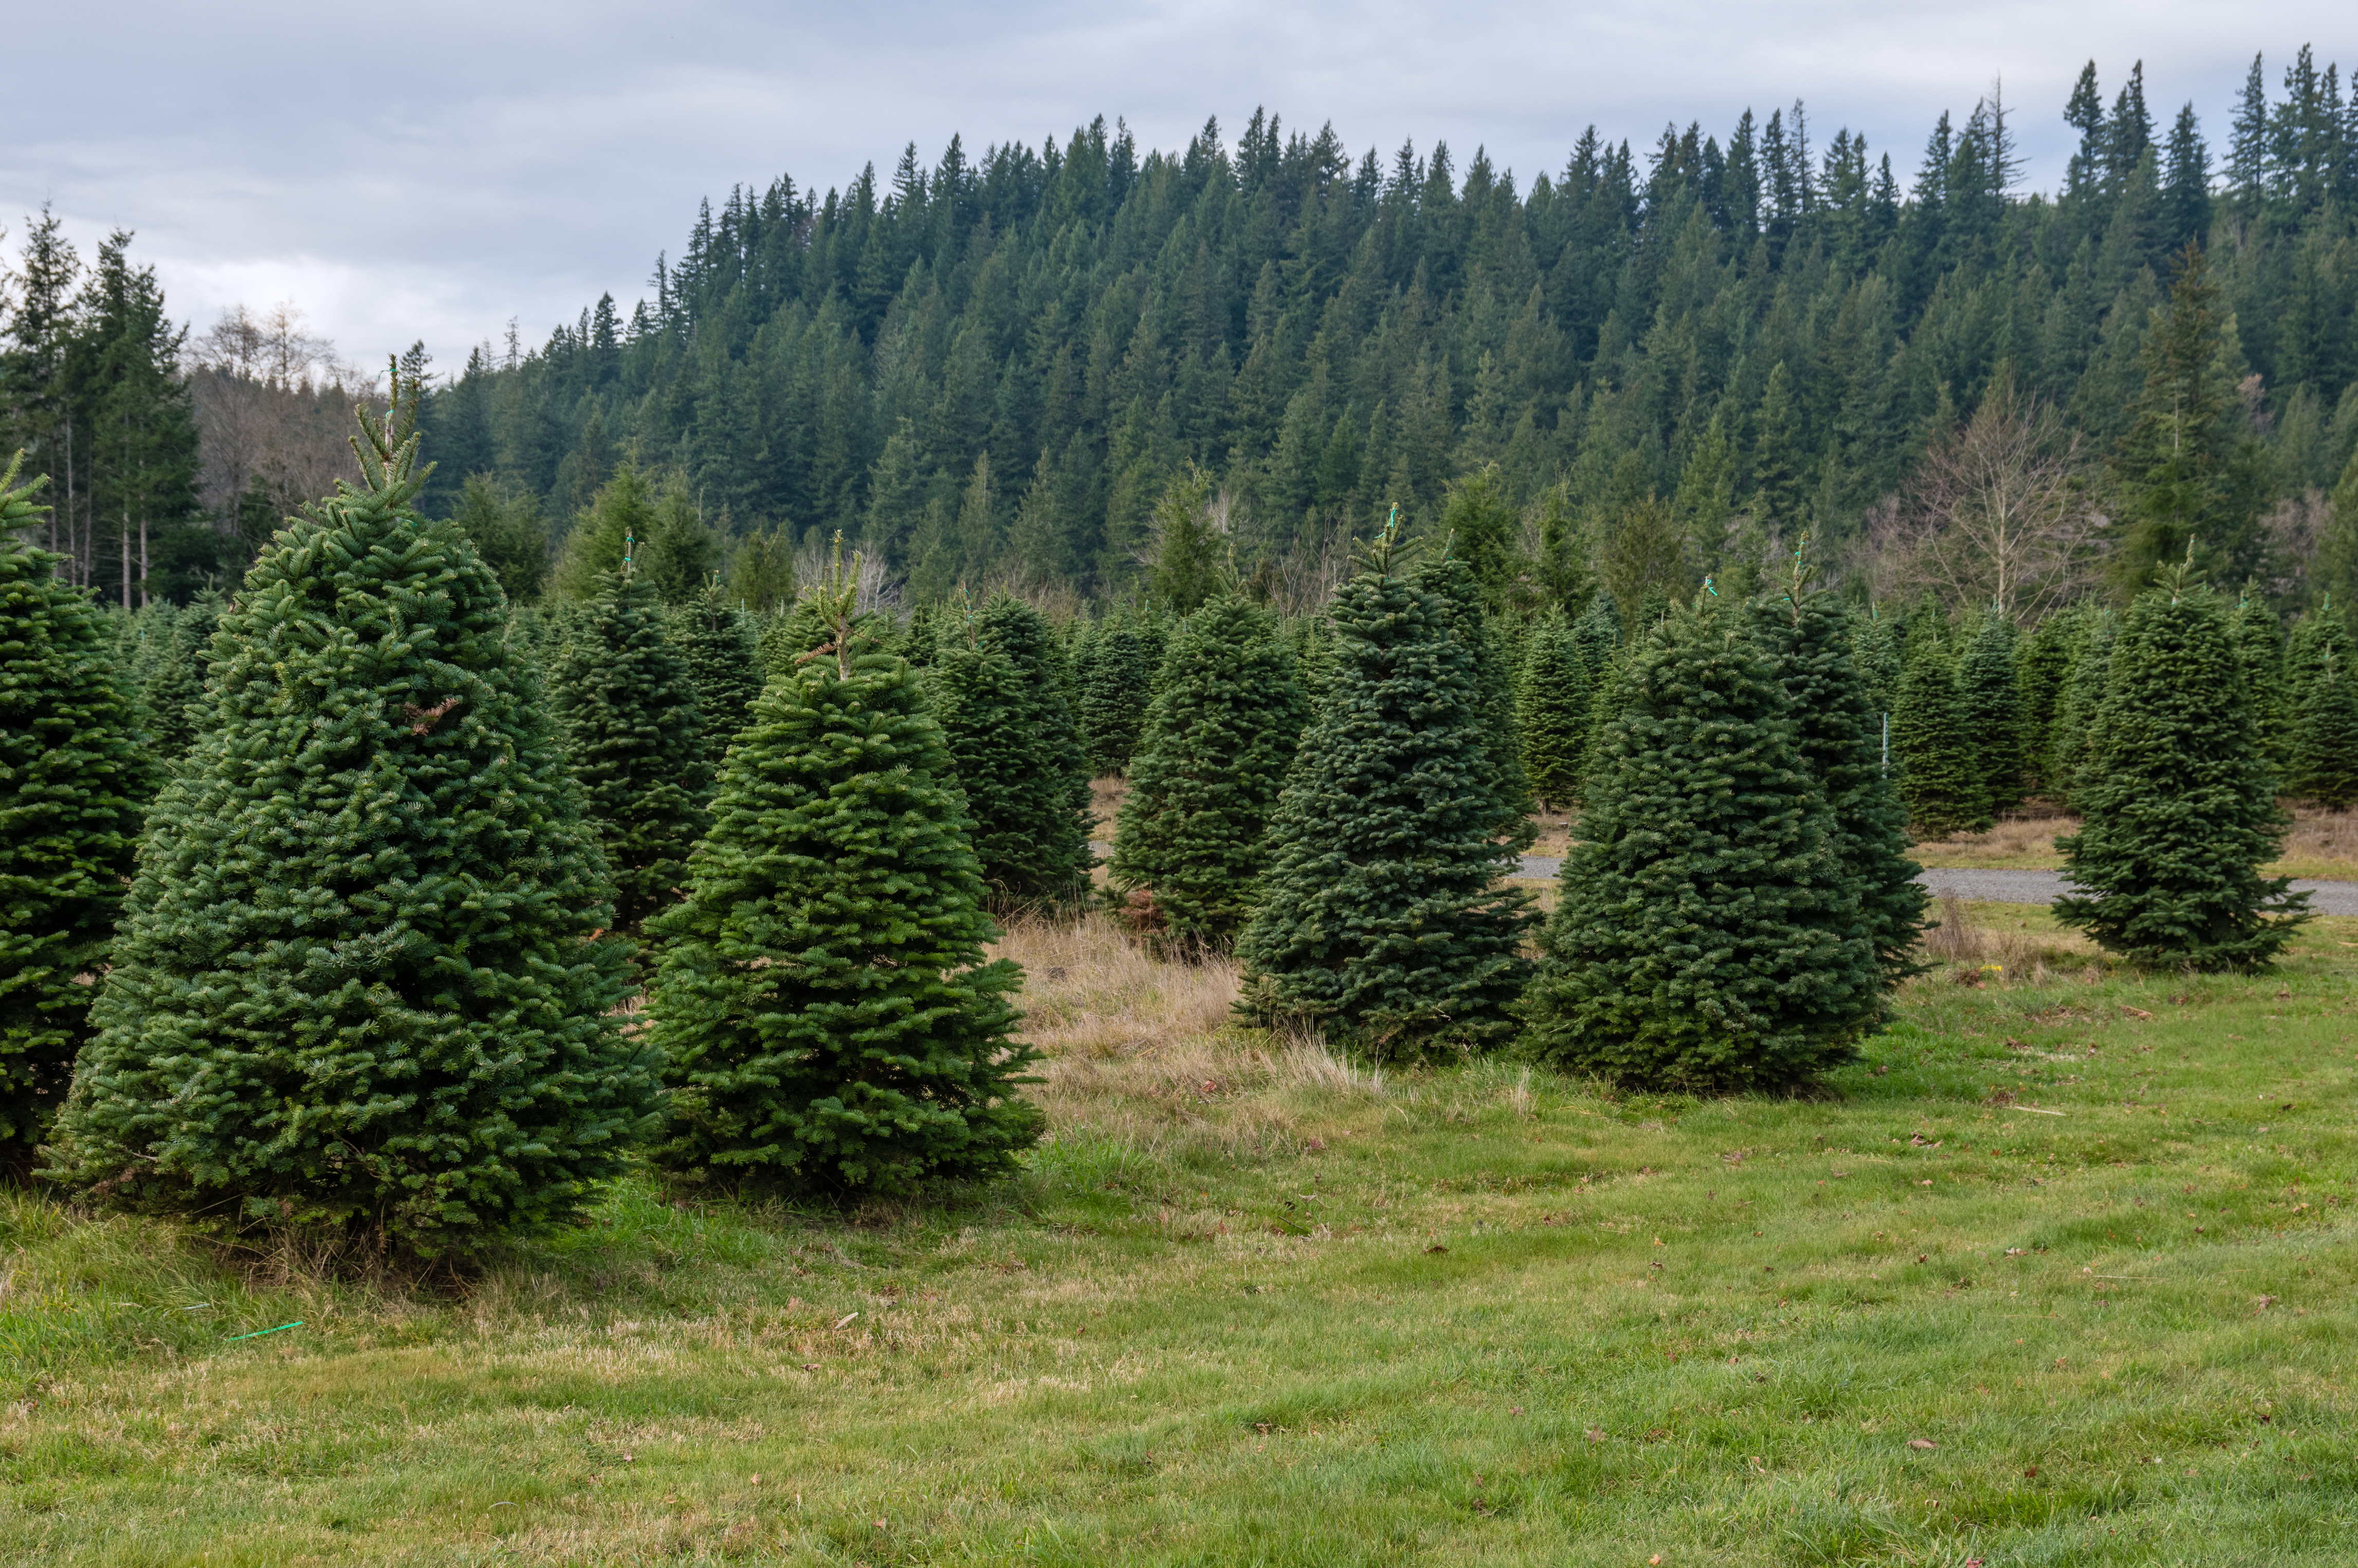 A tree farm growing fir trees for Christmas decorations